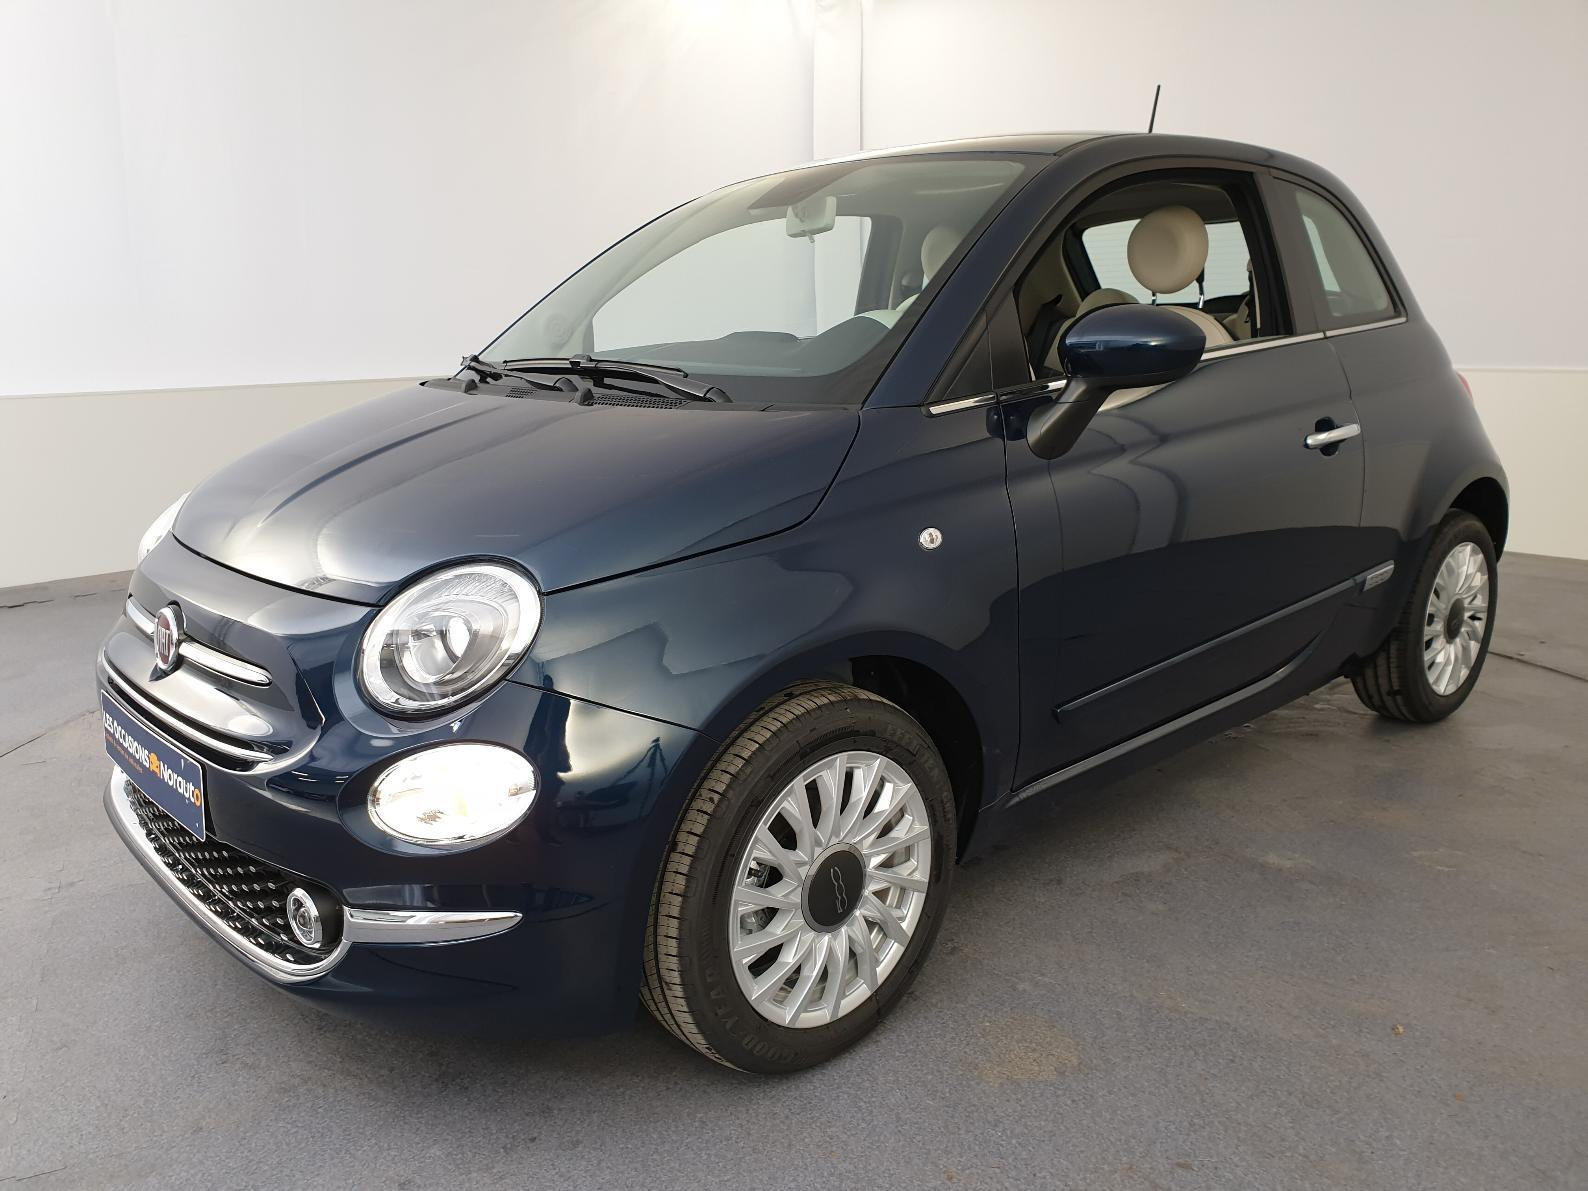 FIAT 500 MY20 SERIE 7 EURO 6D 500 1.2 69 ch Eco Pack S/S Lounge